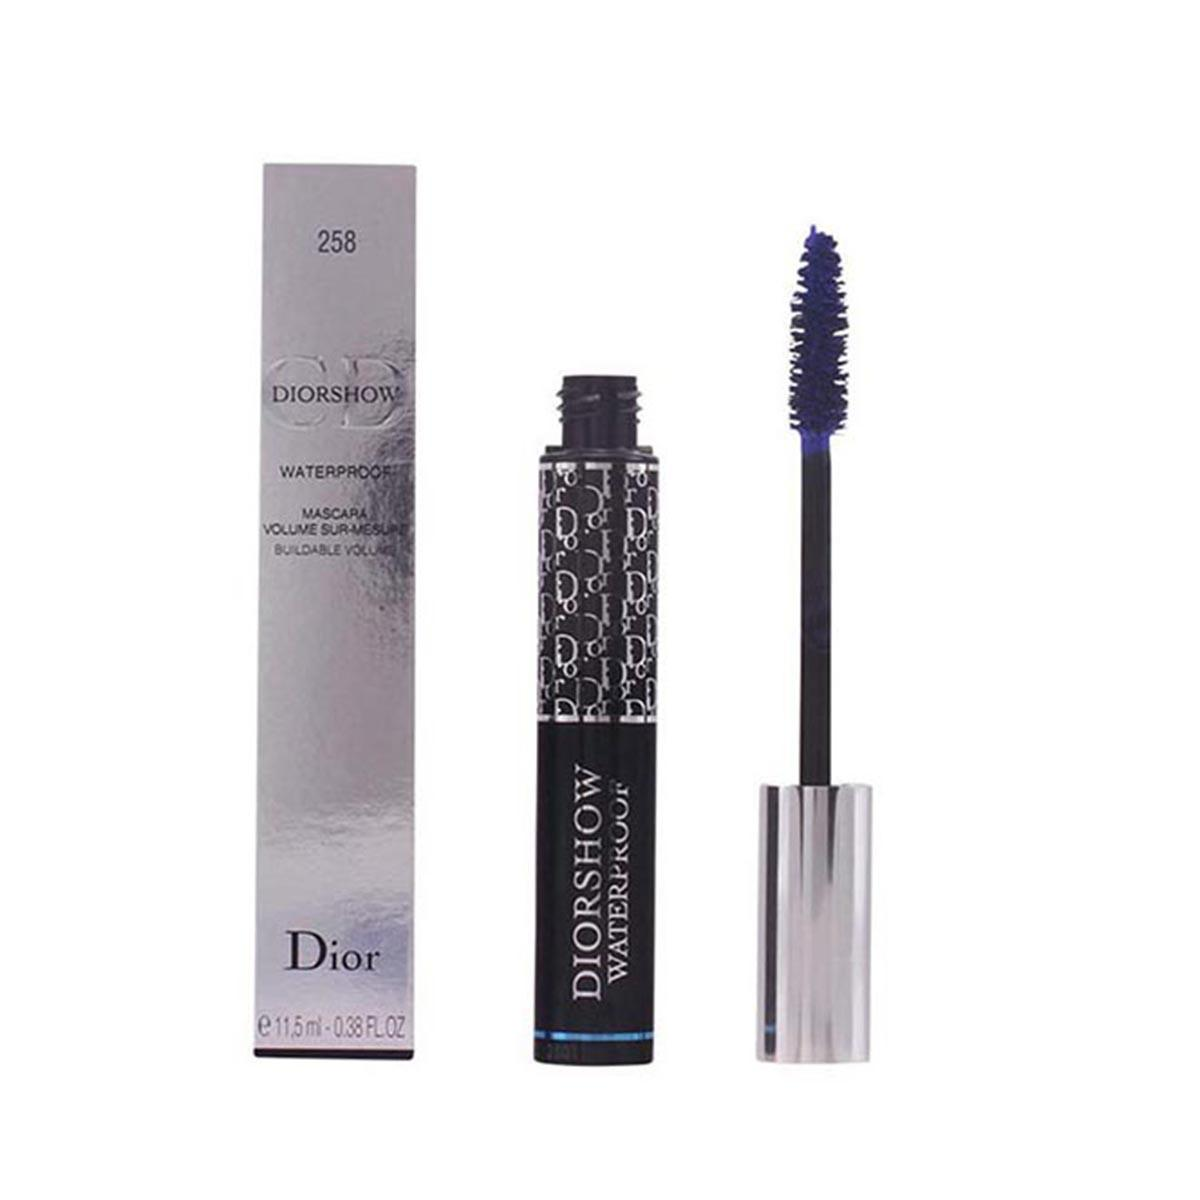 Christian dior fragrances Show Mascara Volume N258